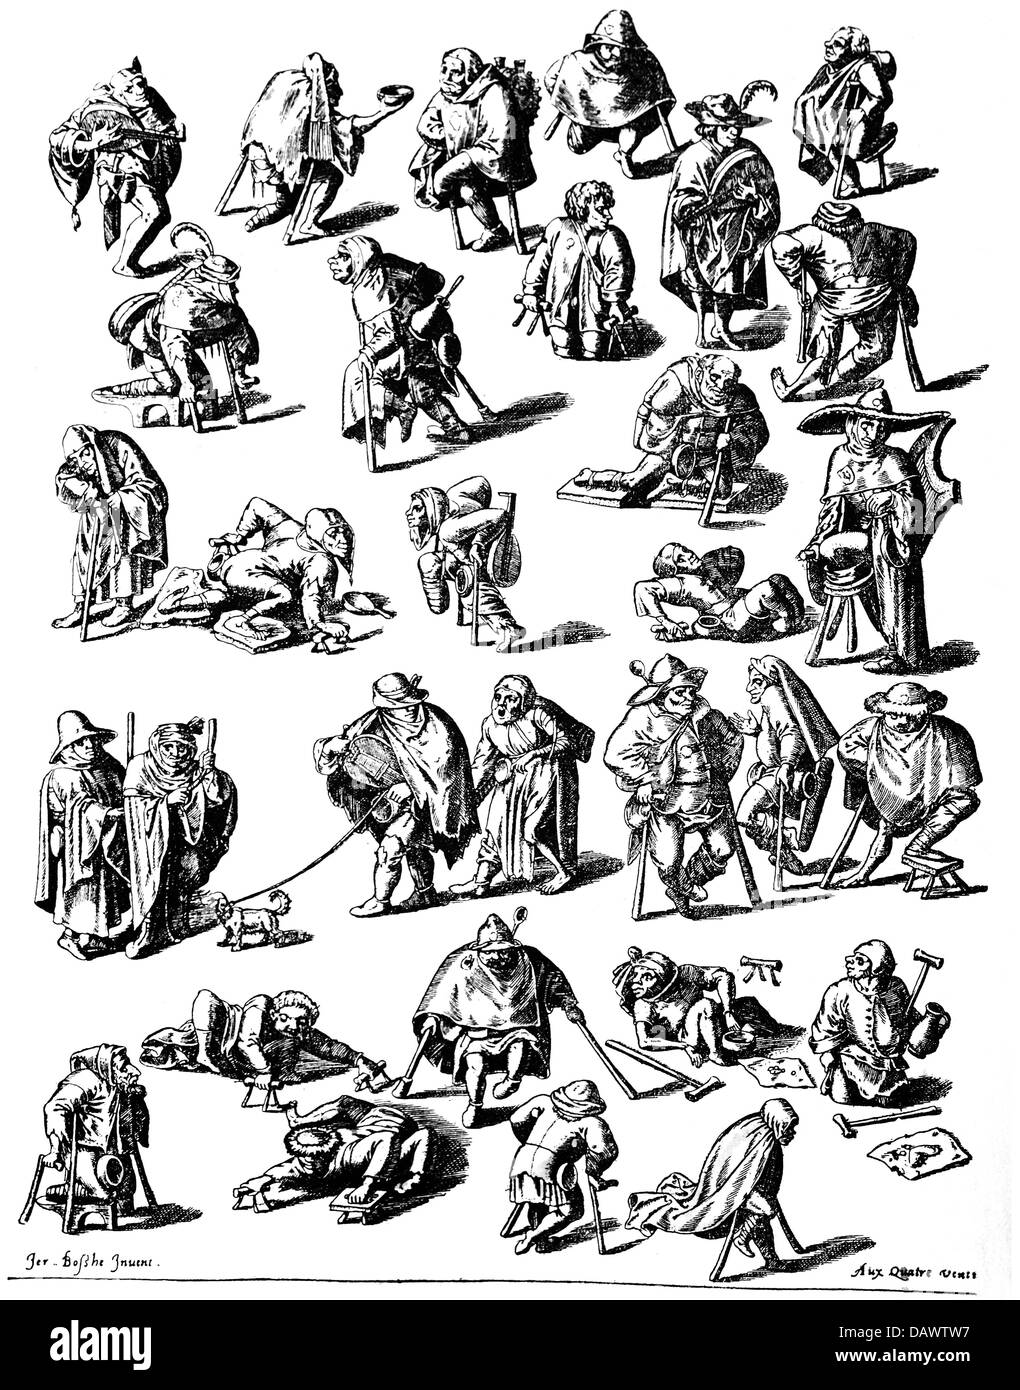 people, hardship / adversity, beggars, copper engraving after Hieronymus Bosch, circa 1550, private collection, - Stock Image